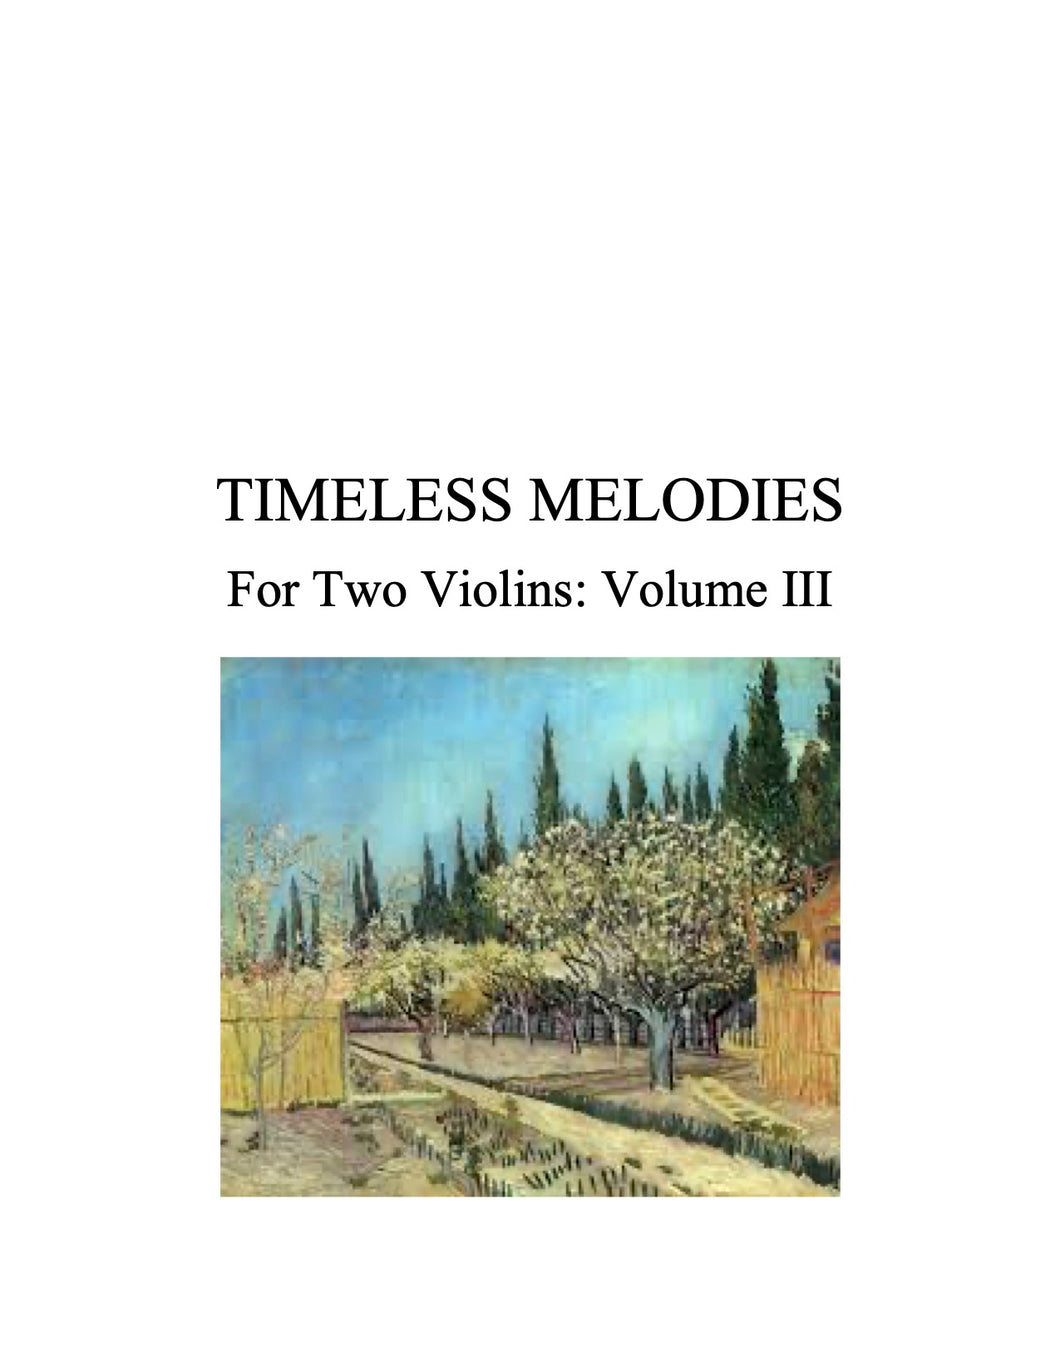 100 - Timeless Melodies for Two Violins, Volume III